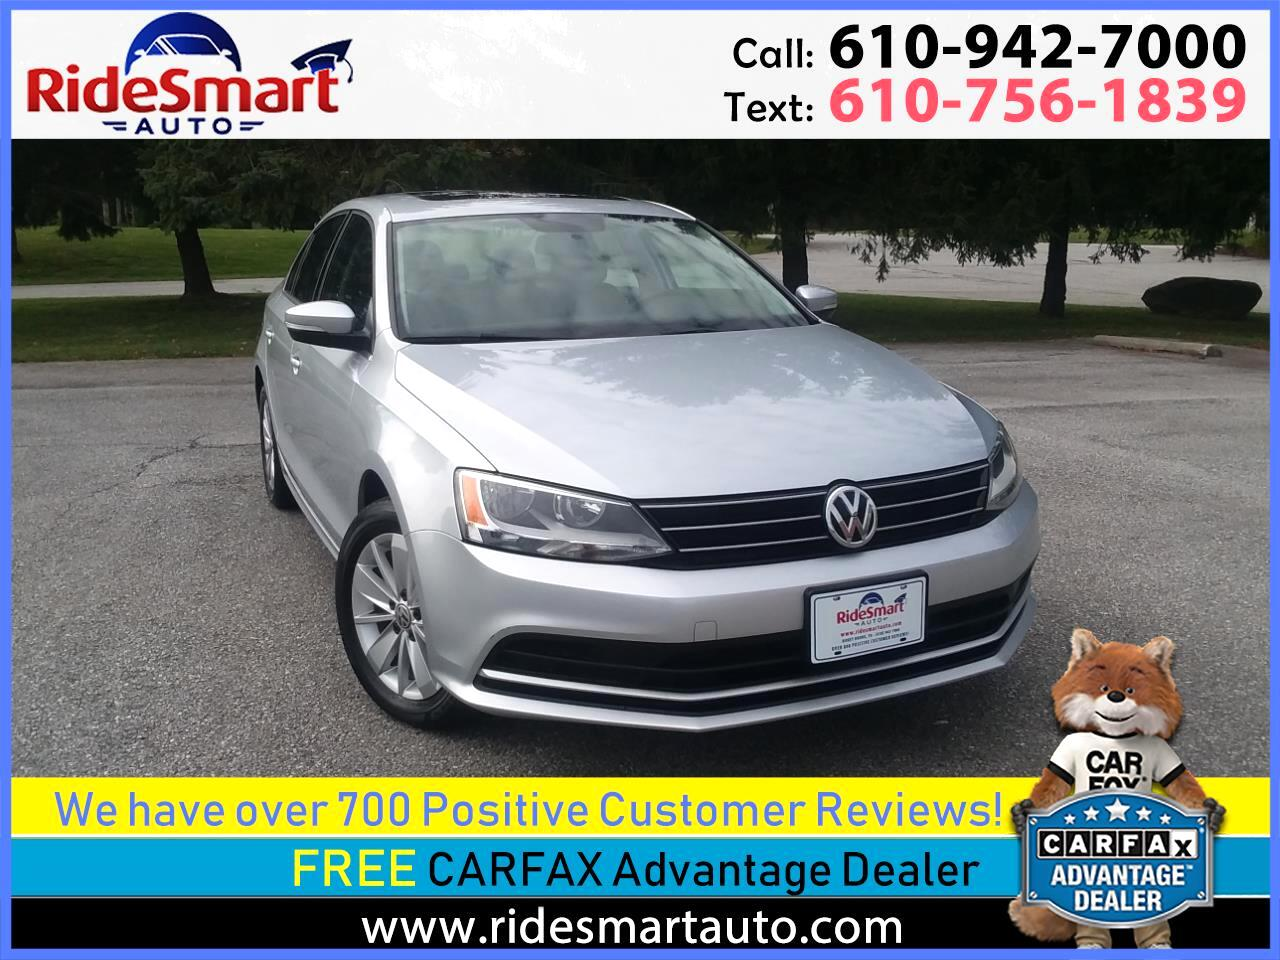 2015 Volkswagen Jetta TDI SE 6 Speed Manual